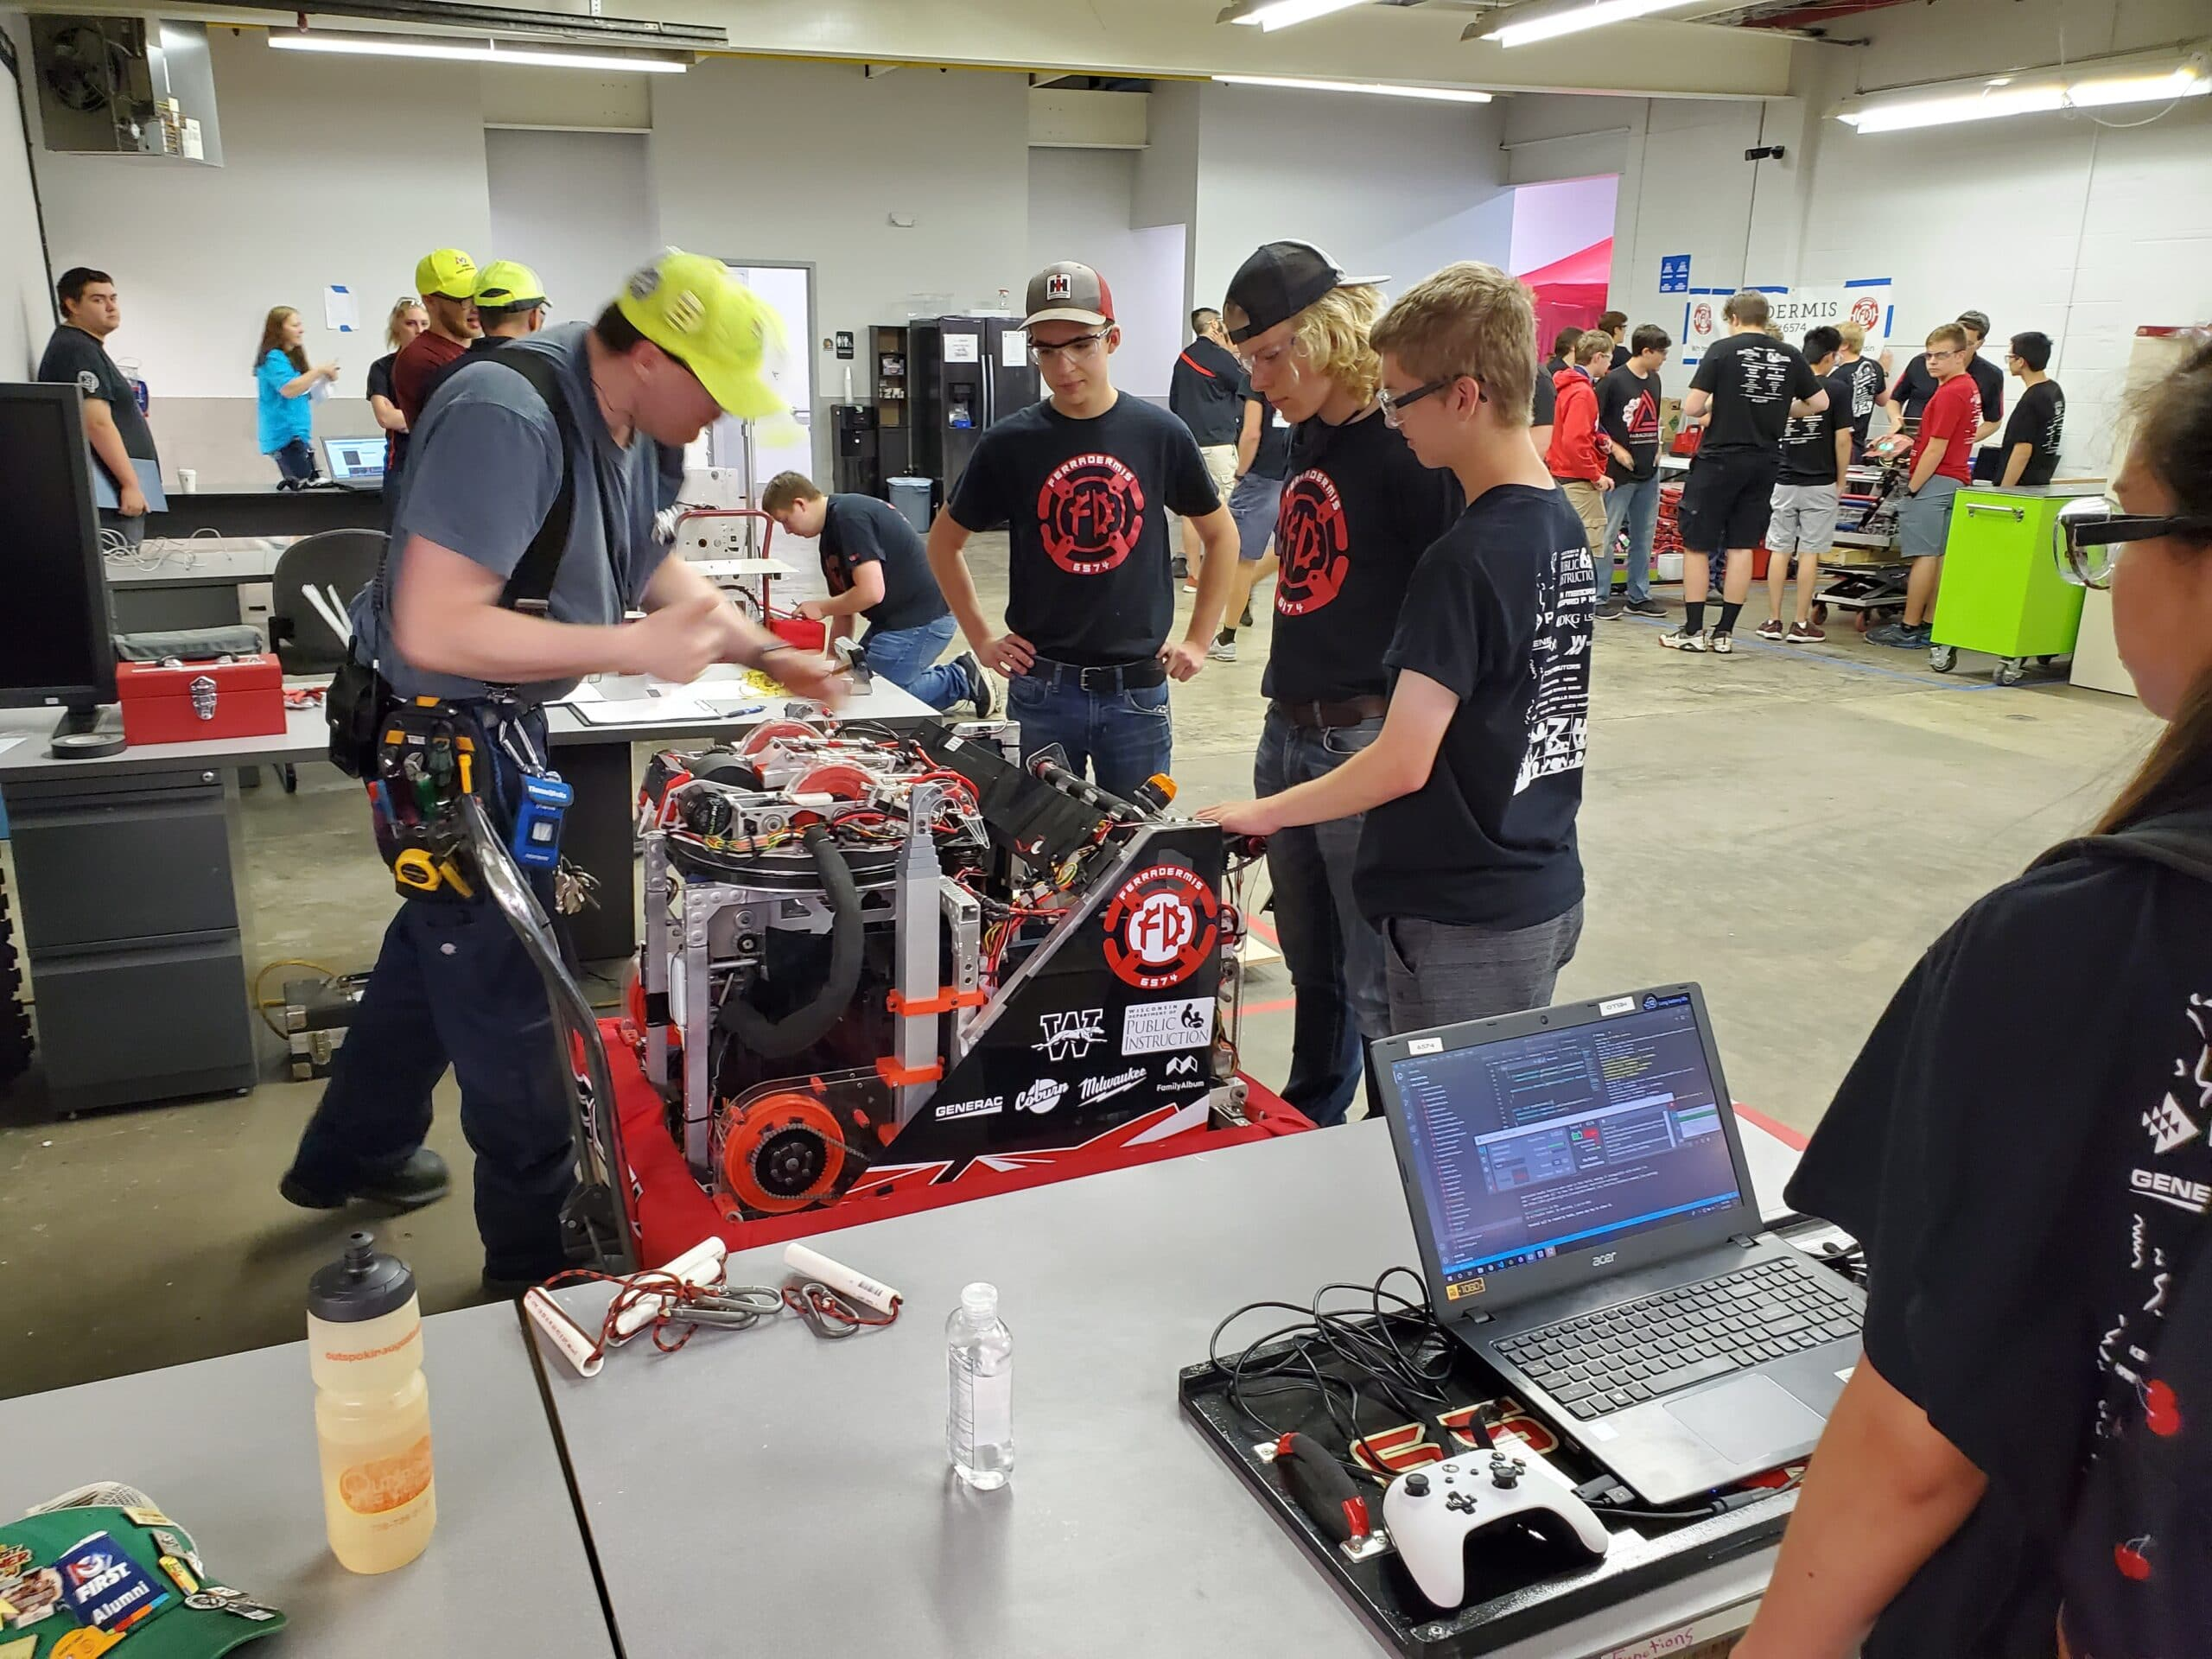 Getting the Robot Officially Inspected before Competition Begins